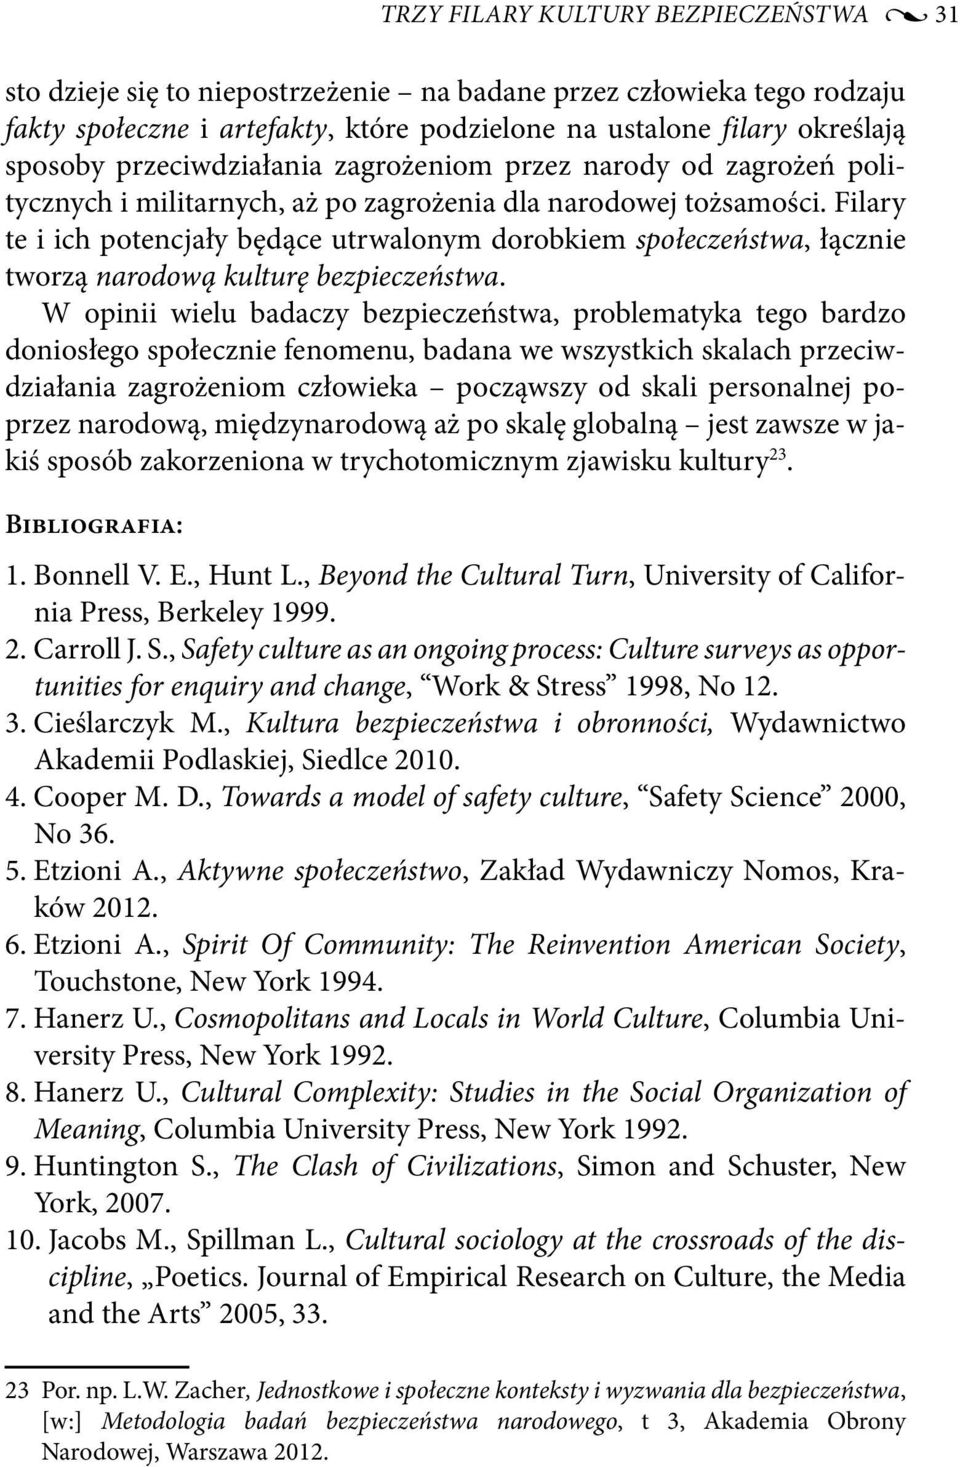 cosmopolitans and locals in world culture Theory, culture & society doi: 101177/026327690007002014 theory culture society 1990 7 237 ulf hannerz cosmopolitans and locals in world culture.